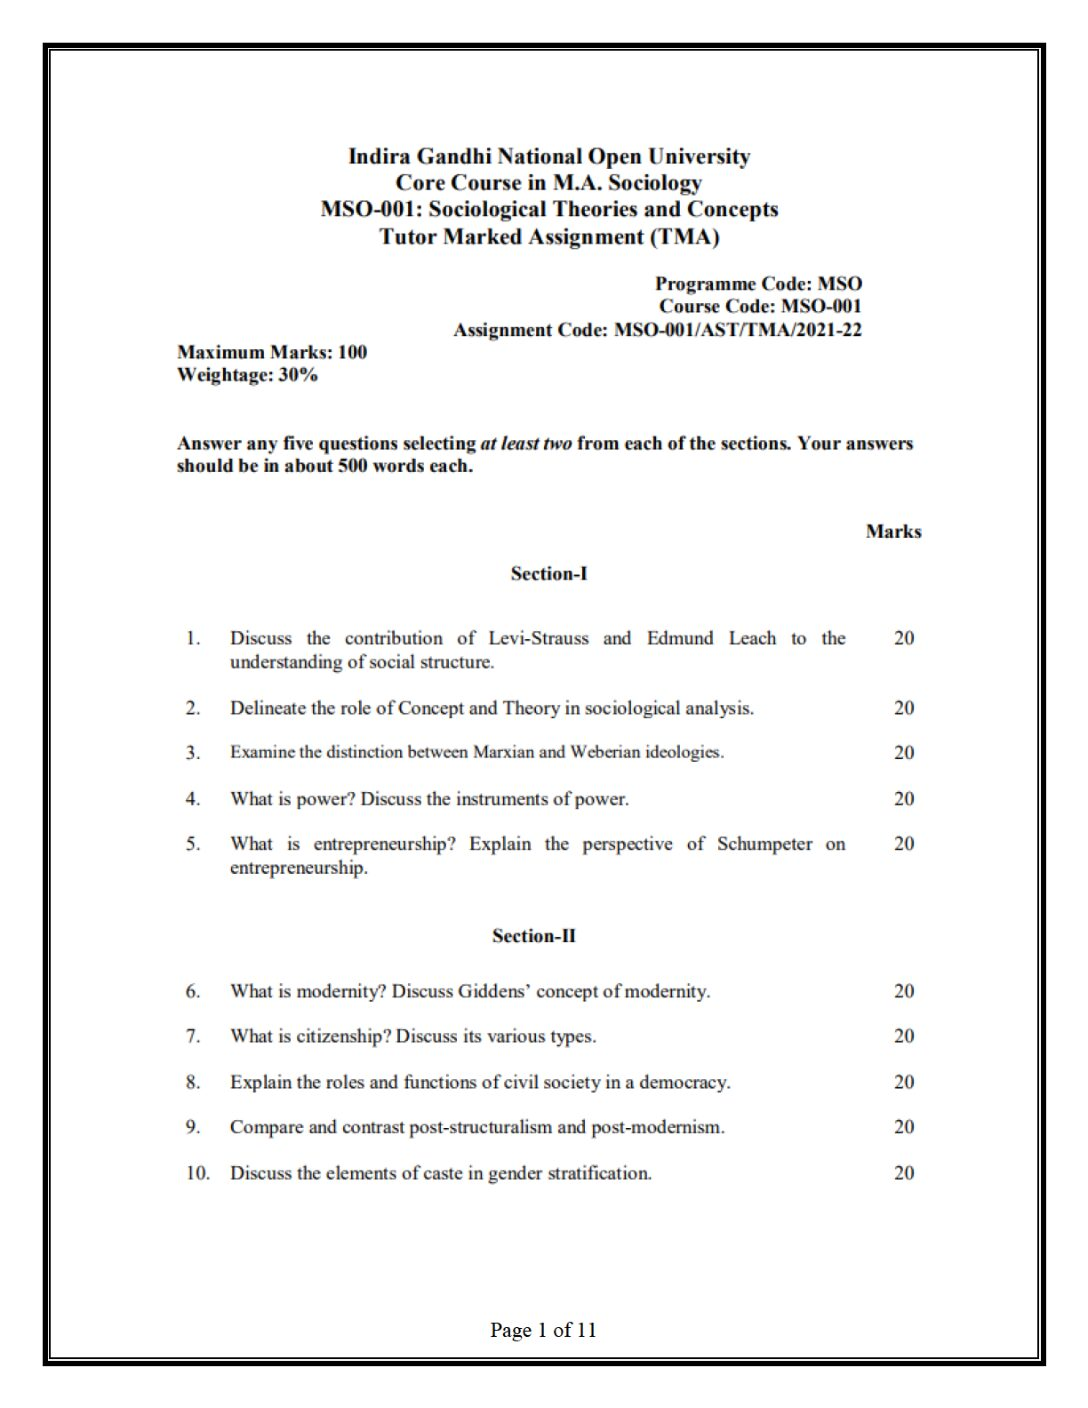 MSO-001 Sociological Theories and Concepts Solved Assignment 2021-22 in English